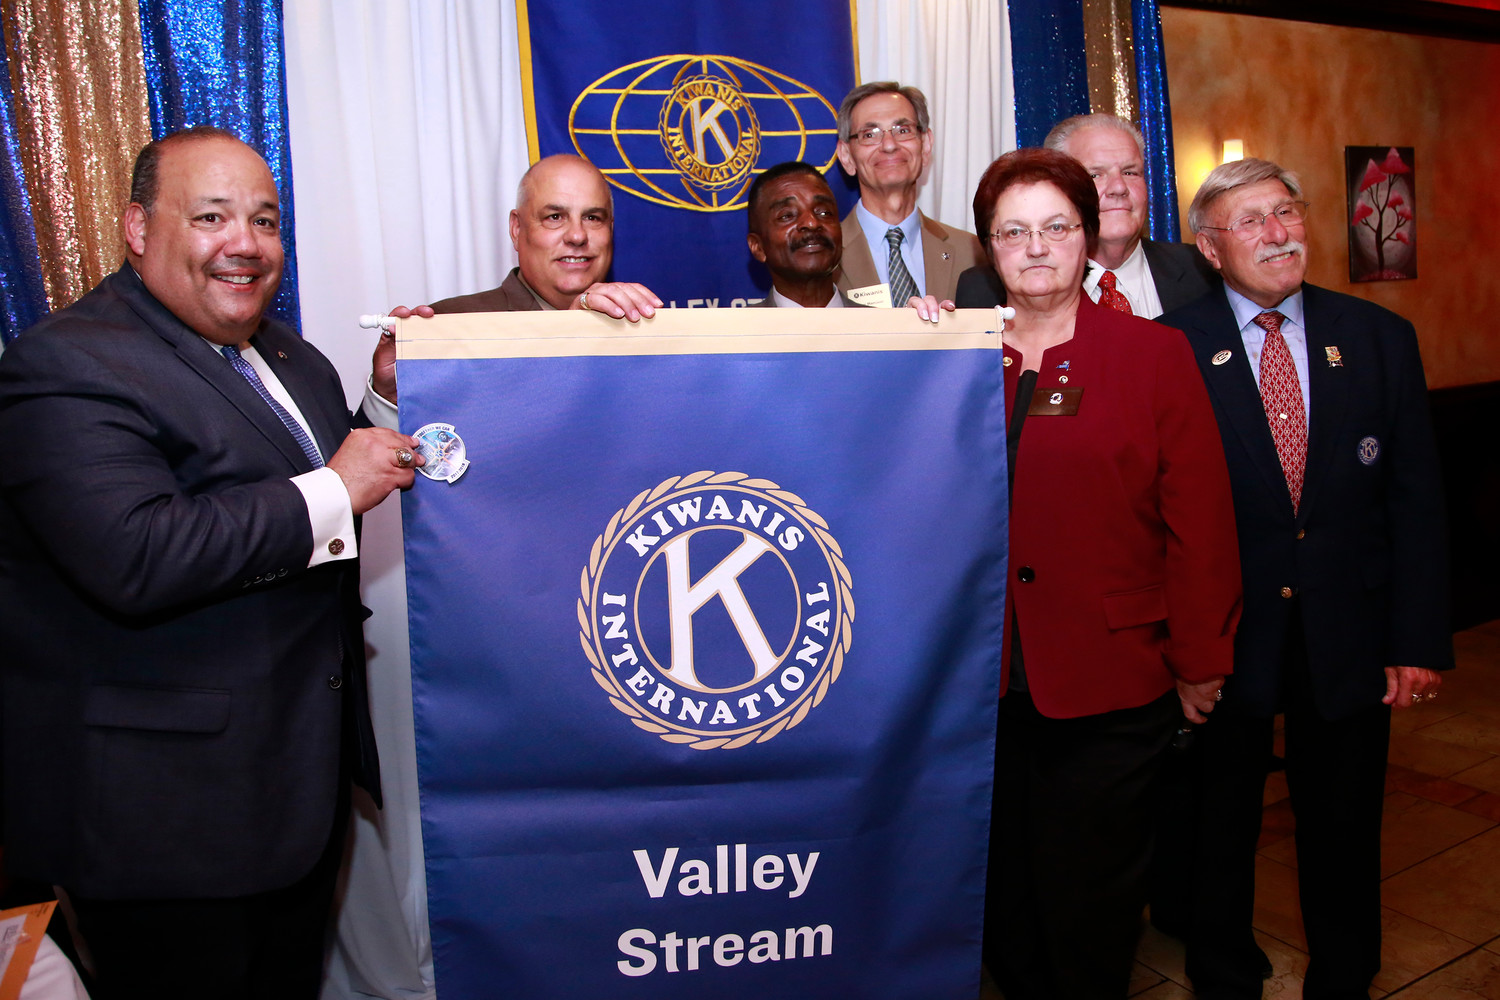 President Richard Ramos and NY District Governor Candace Corsaro hold the V.S. Kiwanis banner.